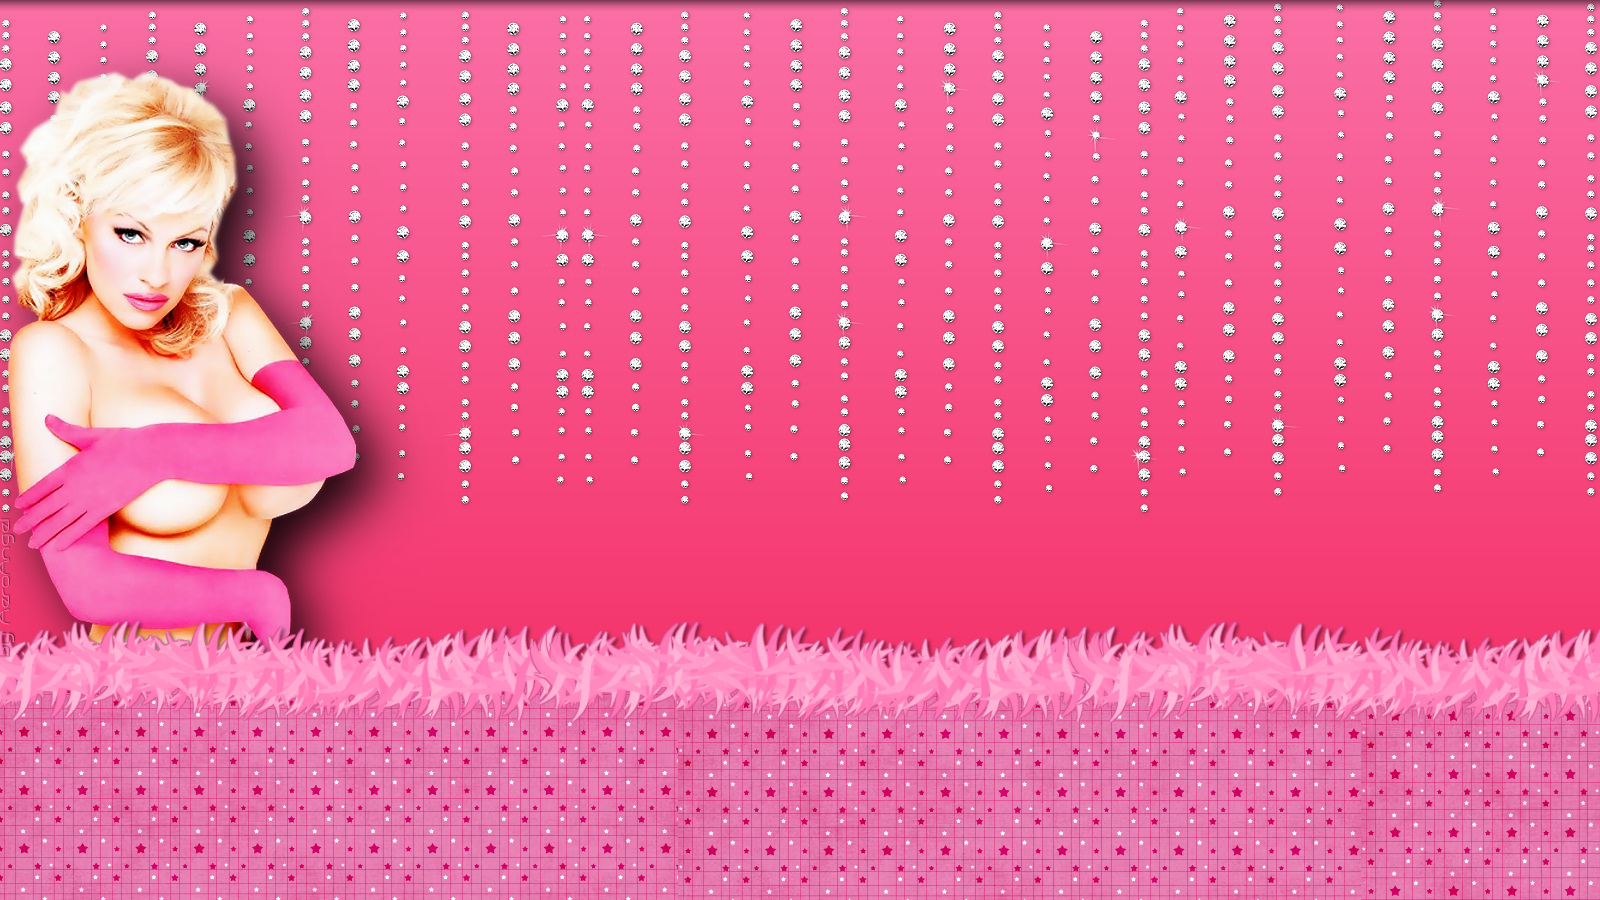 Pretty In Pink Twitter Backgrounds Pamela Anderson   Pretty In Pink 1600x900